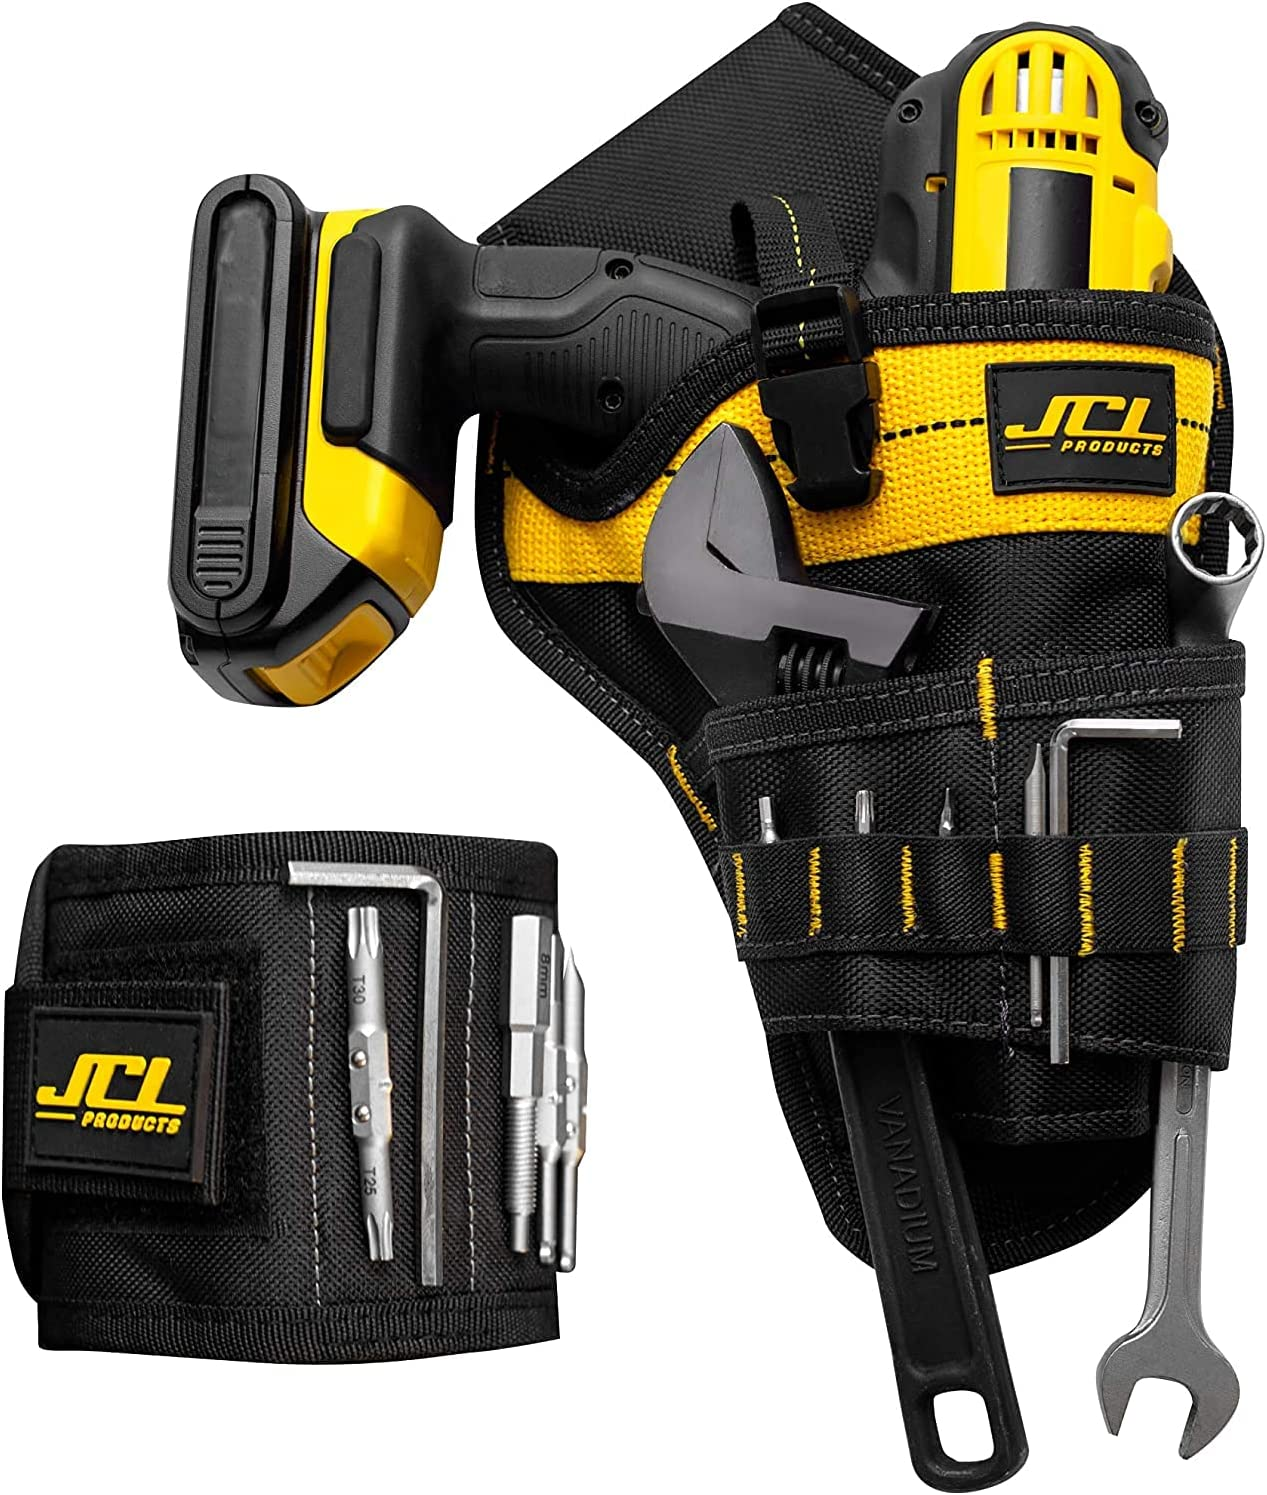 JCL Cordless Drill Tool Belt Holster and Magnetic Wristband Comb